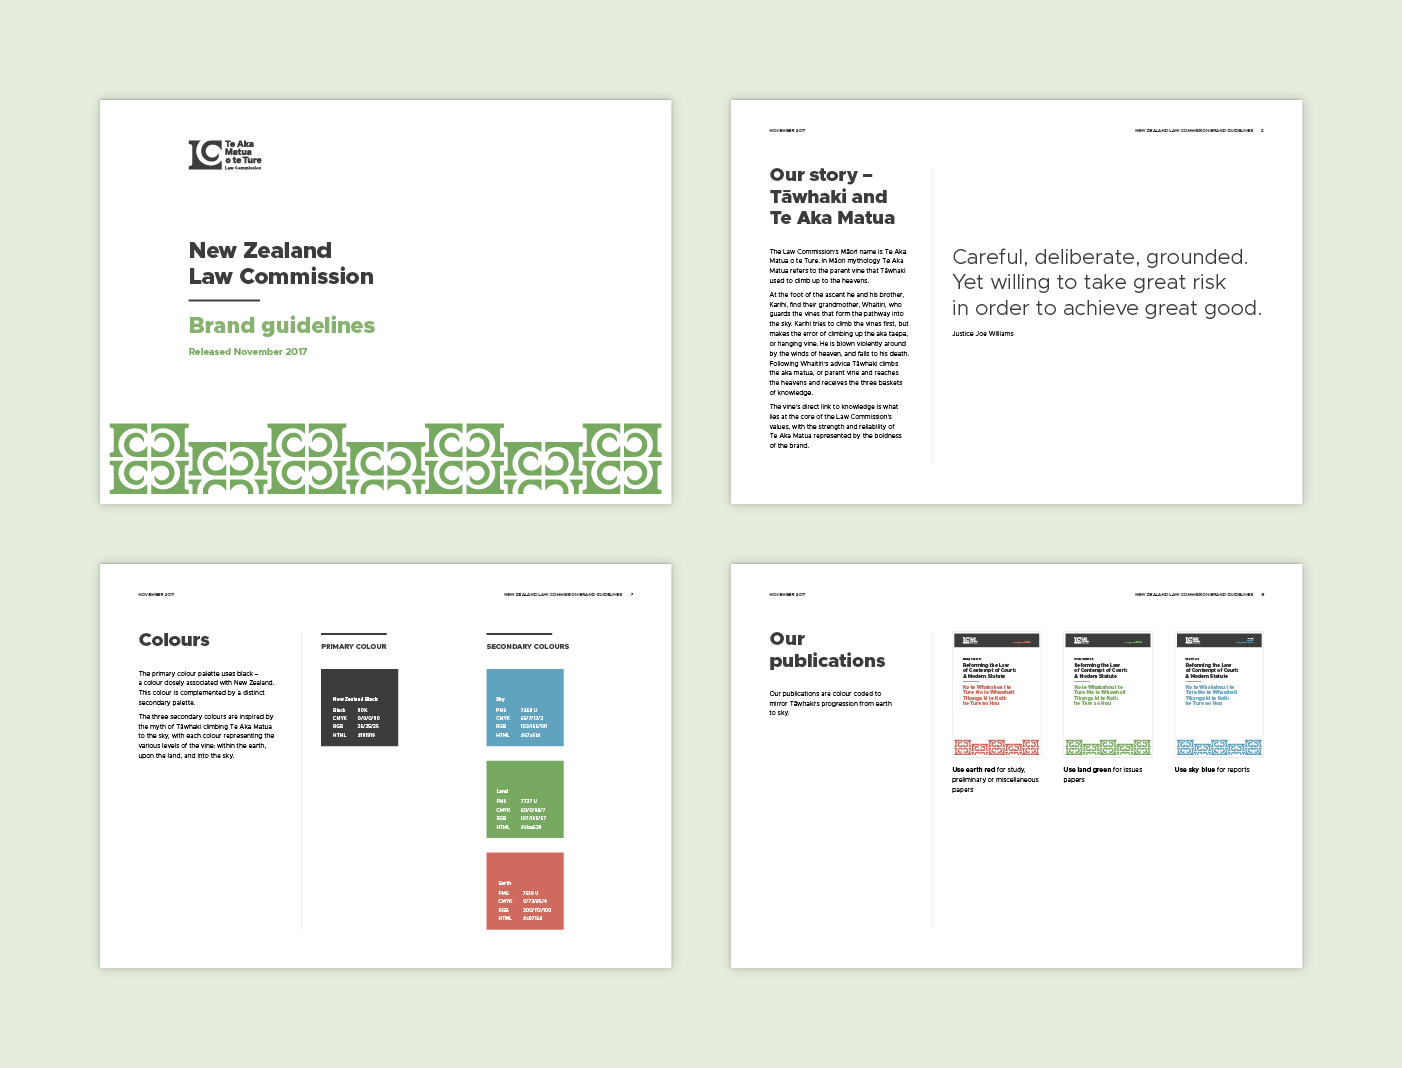 Law Commission brand guidelines